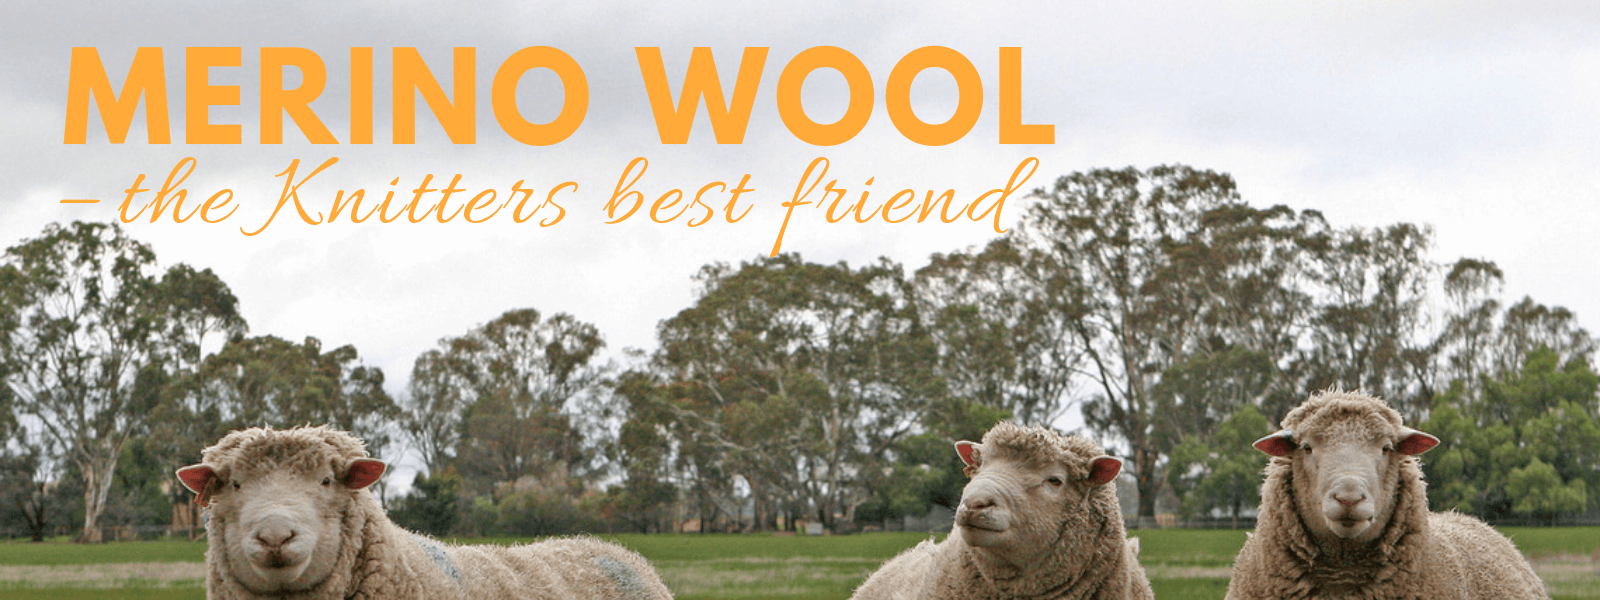 Merino wool - this article answers all your questions like, why merino softer than other wool? Why is it so warm? Can it really breathe? And how do the merino sheep look like?